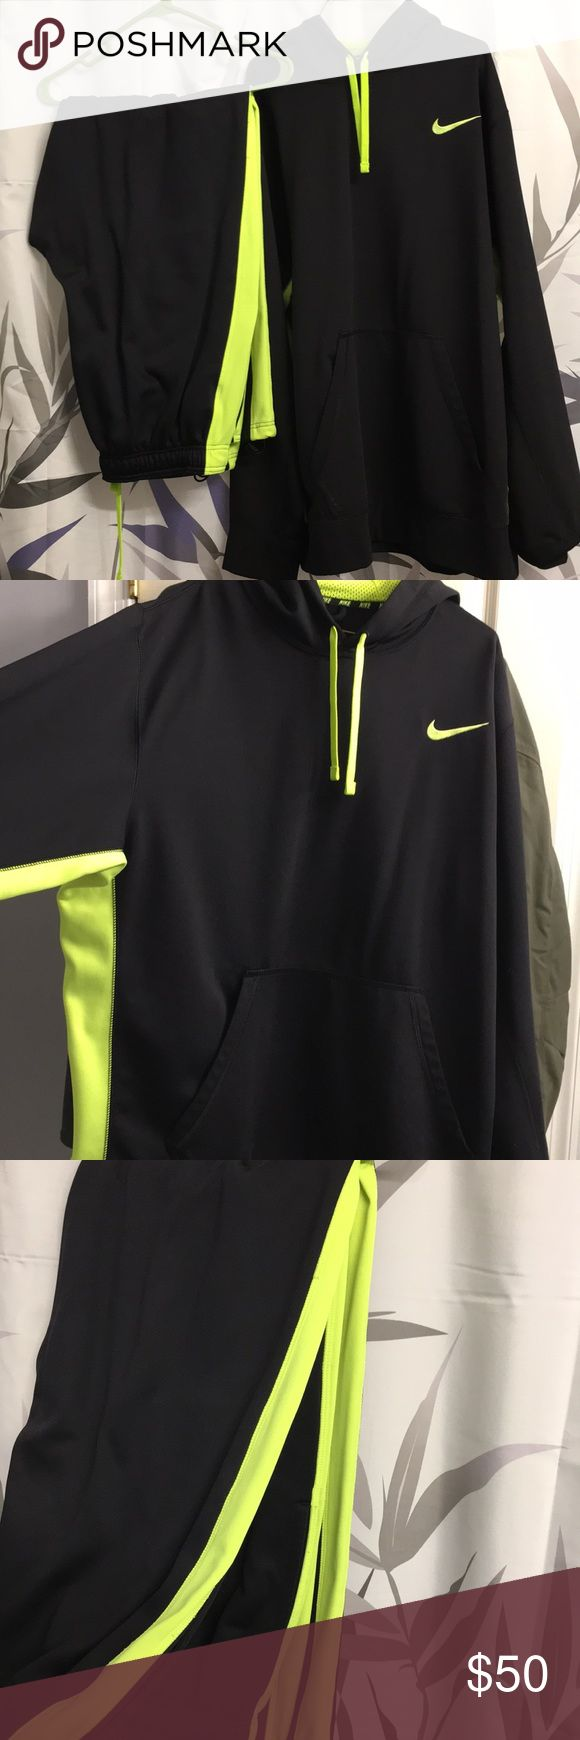 Bundle of 3! Like new men's Nike sweatsuit and top Matching Nike sweatpants, shirt, and hoodie. Black with fluorescent green/yellow accents. Like new condition and barely worn! All pieces size XXL Nike Pants Sweatpants & Joggers